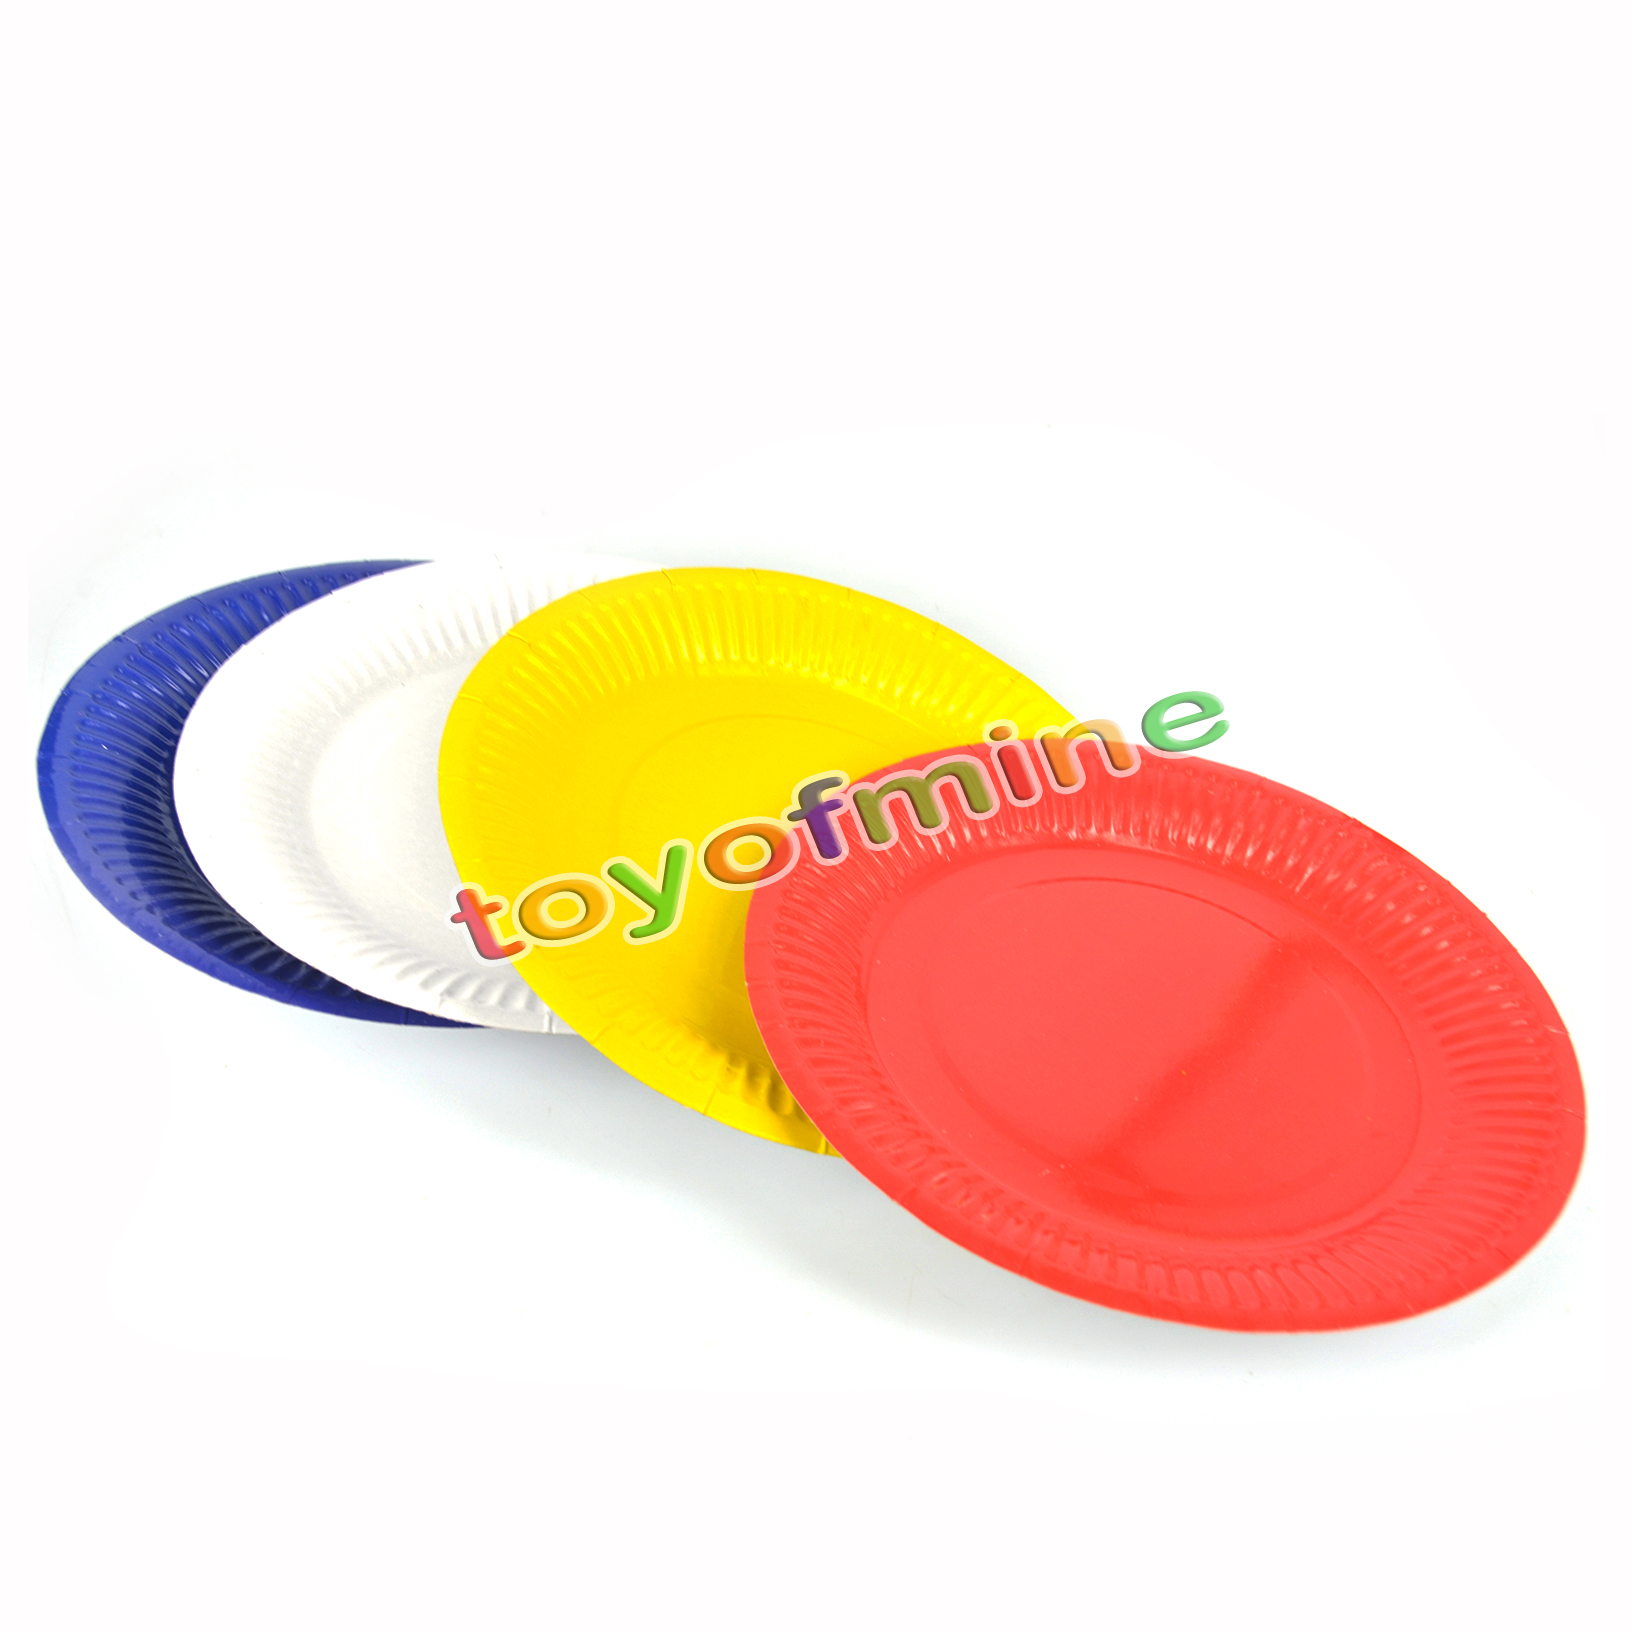 10pcs/lot 18cm Multi candy color festival disposable plate for parties birthday paper plates party wedding Halloween supplies  sc 1 st  AliExpress.com & Colored Disposable Plates Promotion-Shop for Promotional Colored ...